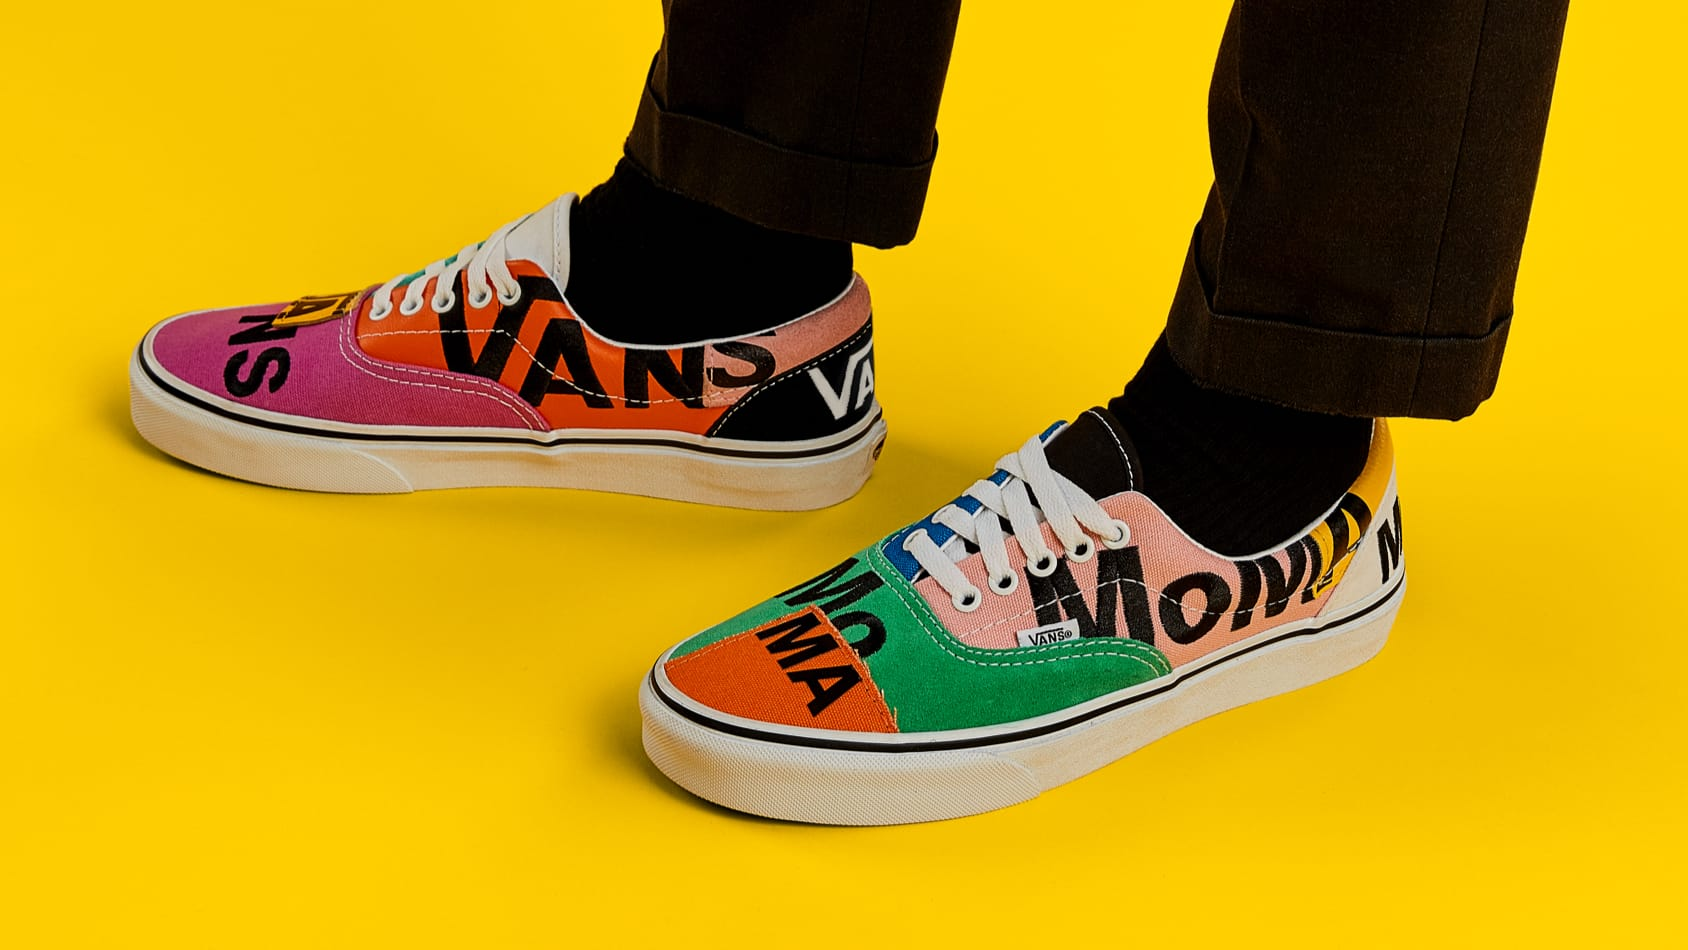 Shop the exclusive MoMA Vans Era sneakers